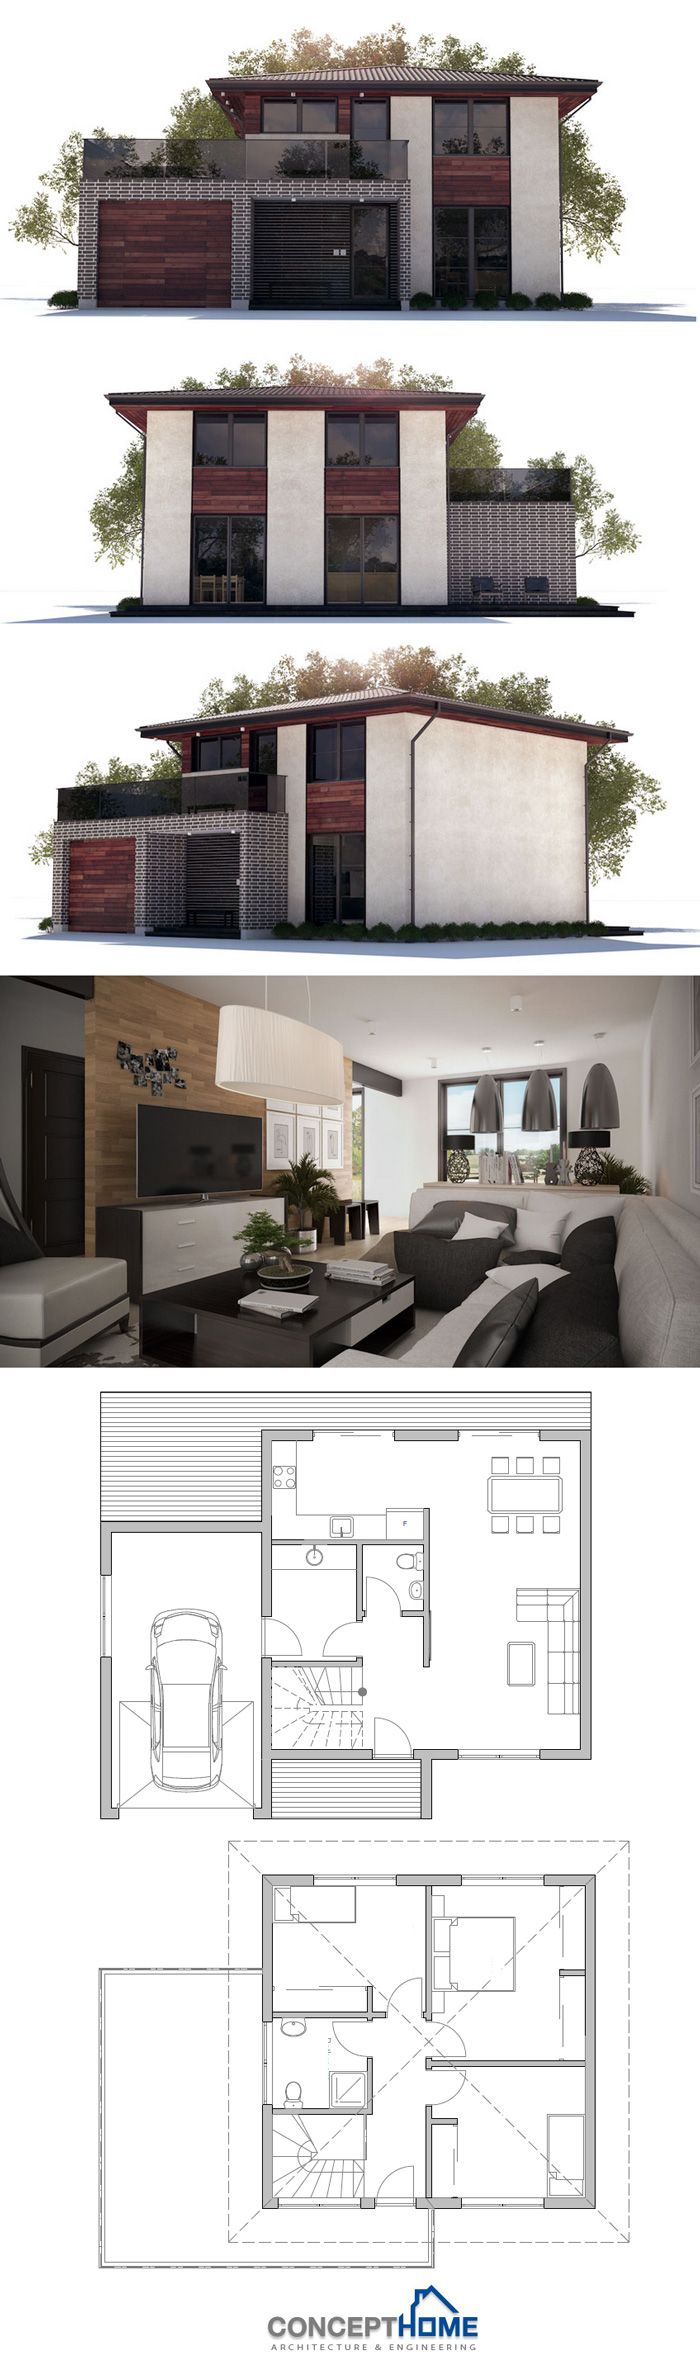 Man s house layout